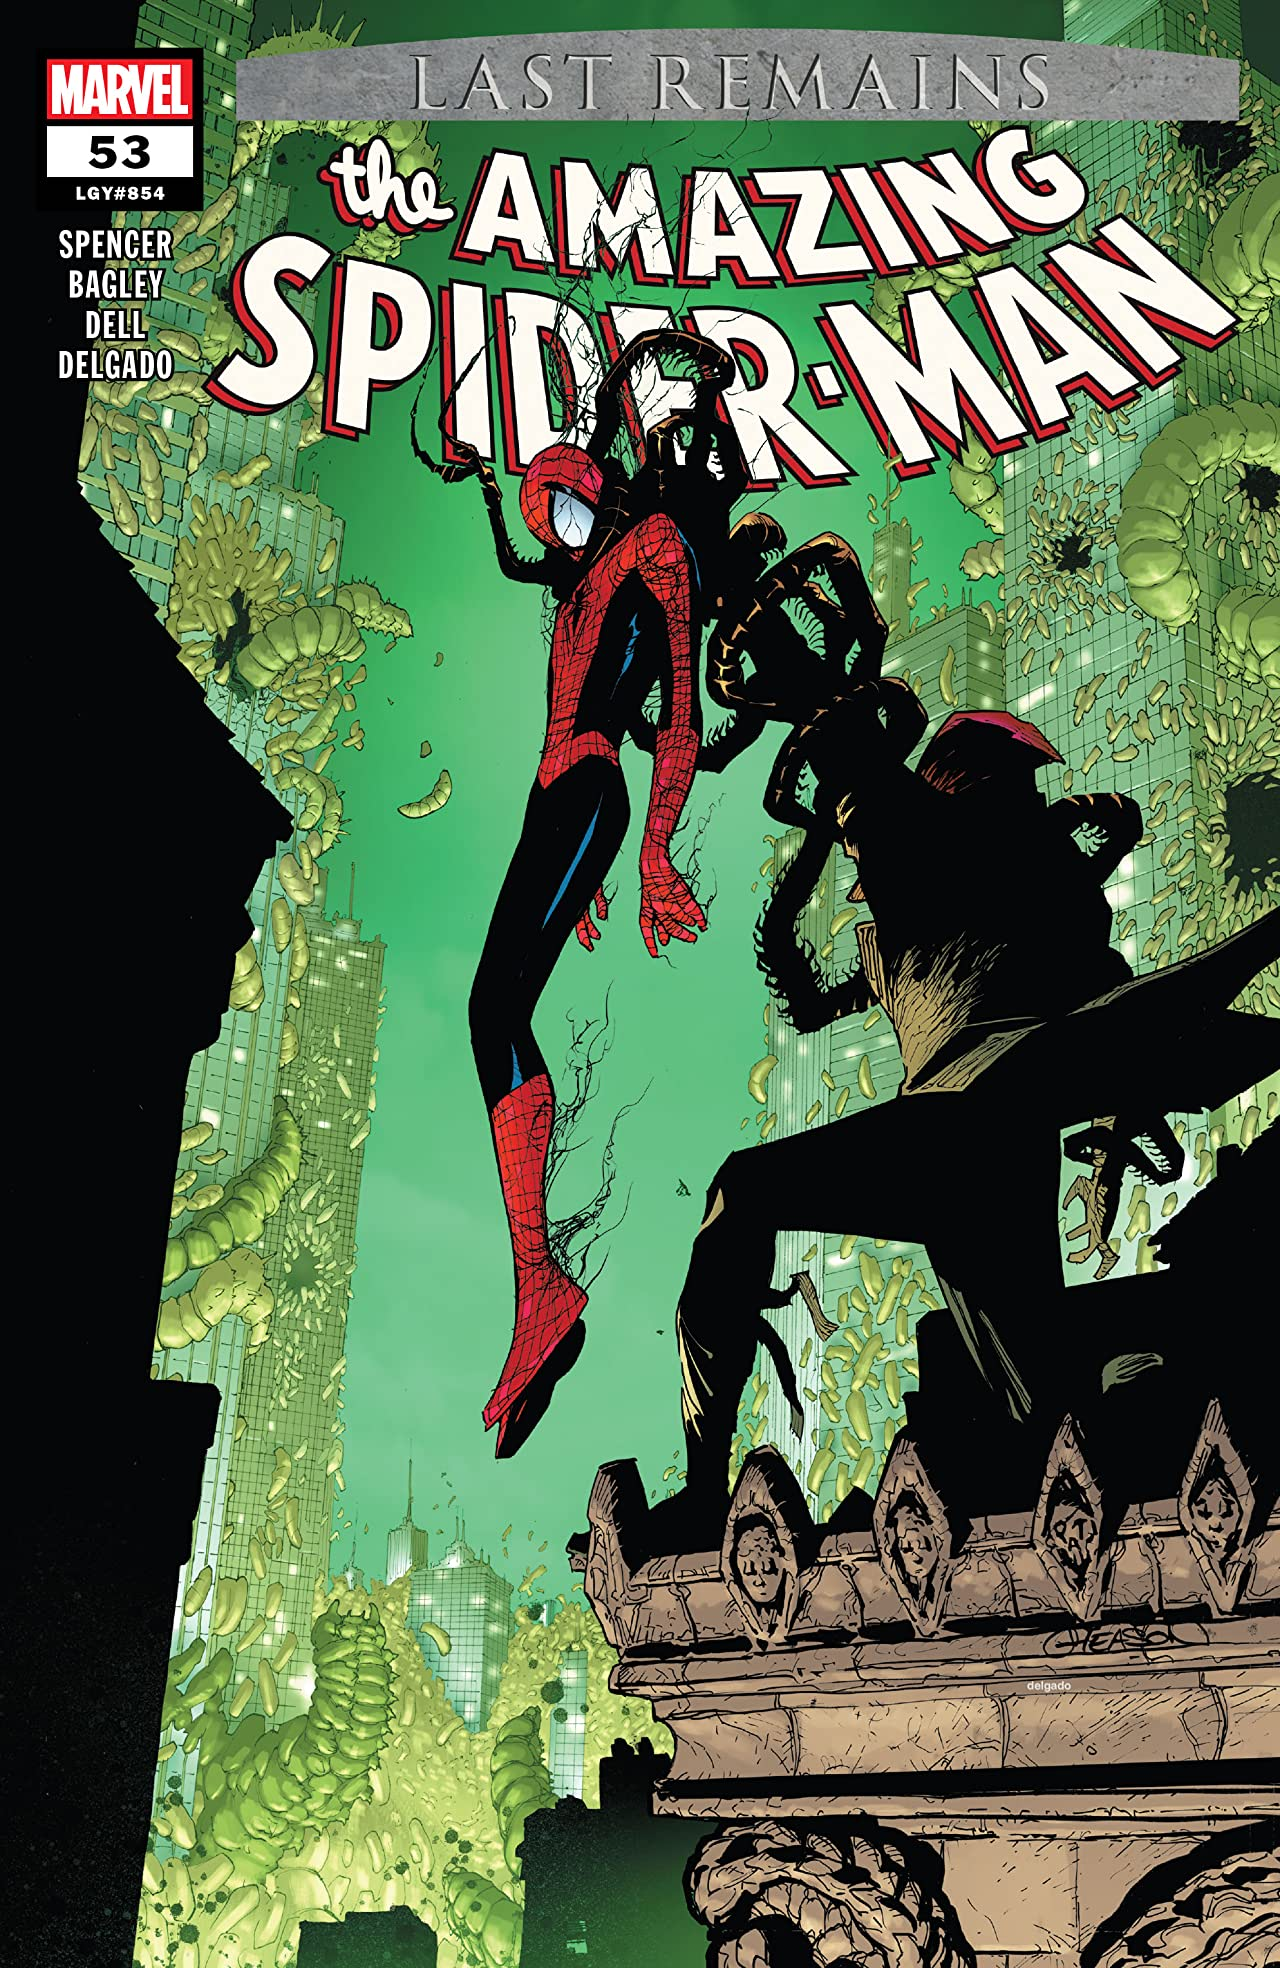 REVIEW: Amazing Spider-Man #53